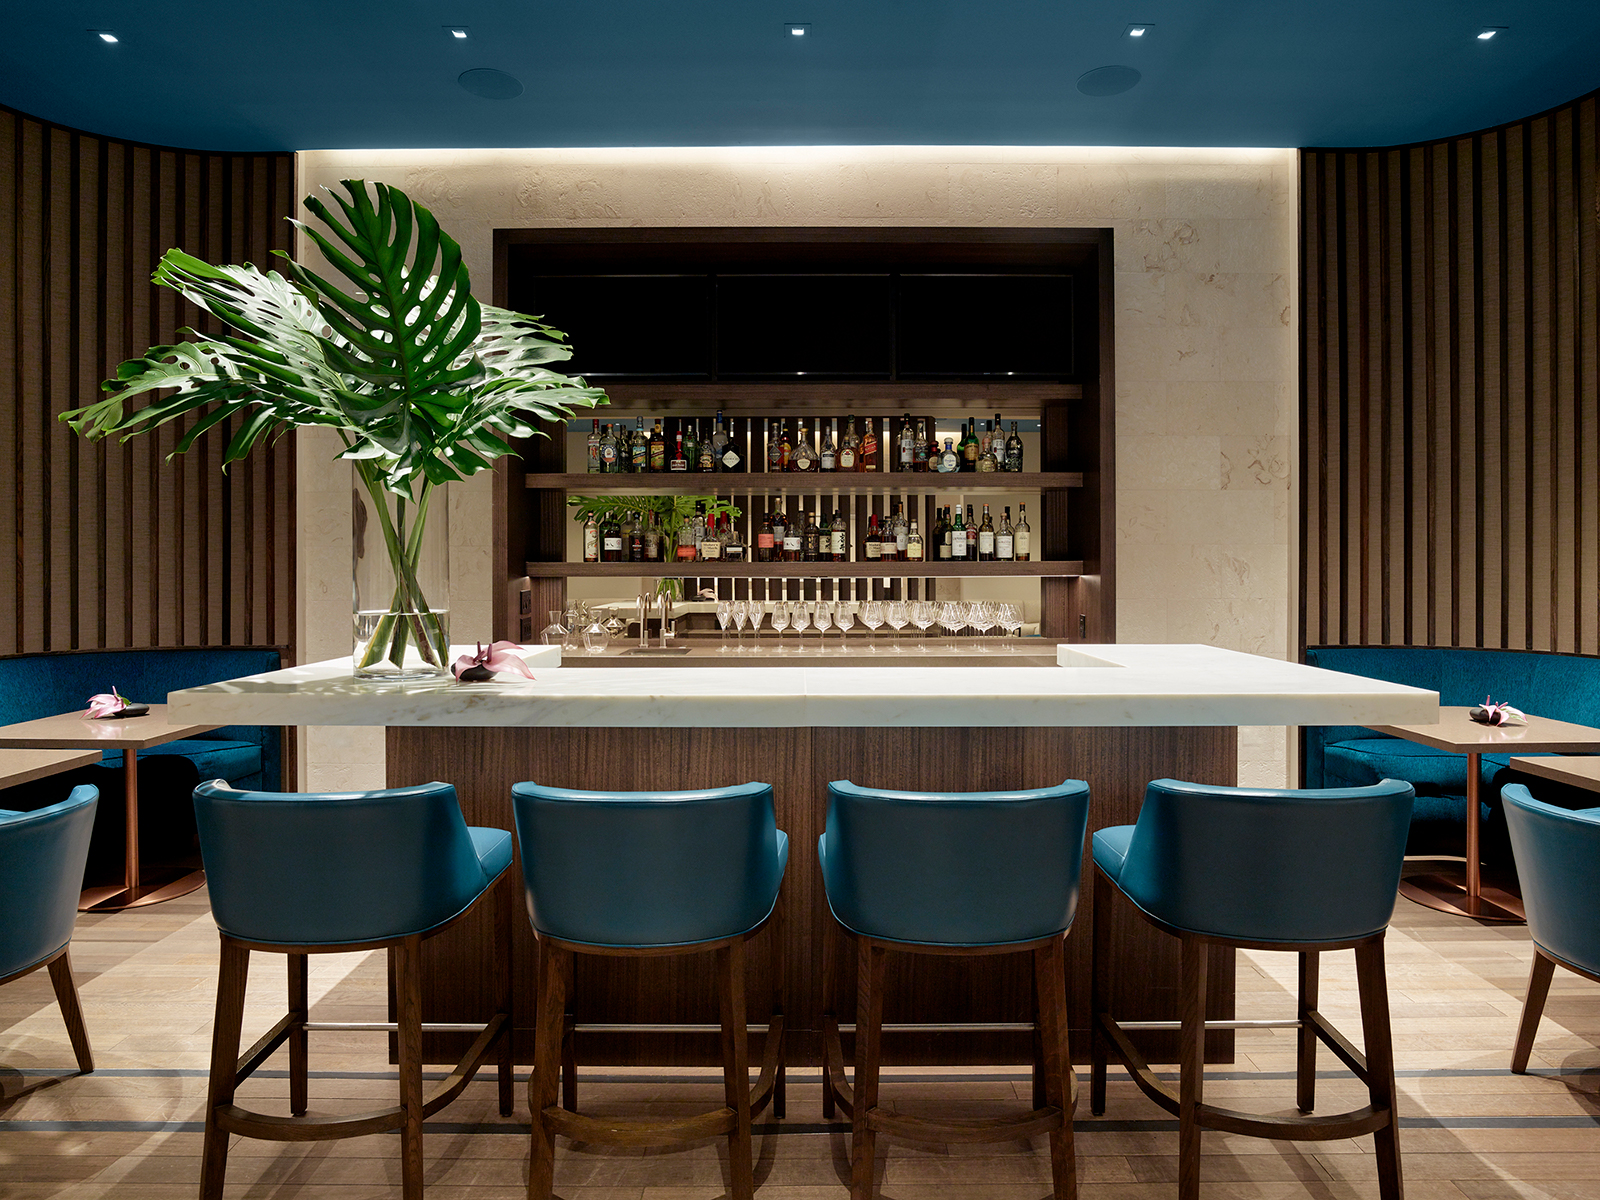 Park Lane Lounge Image 6